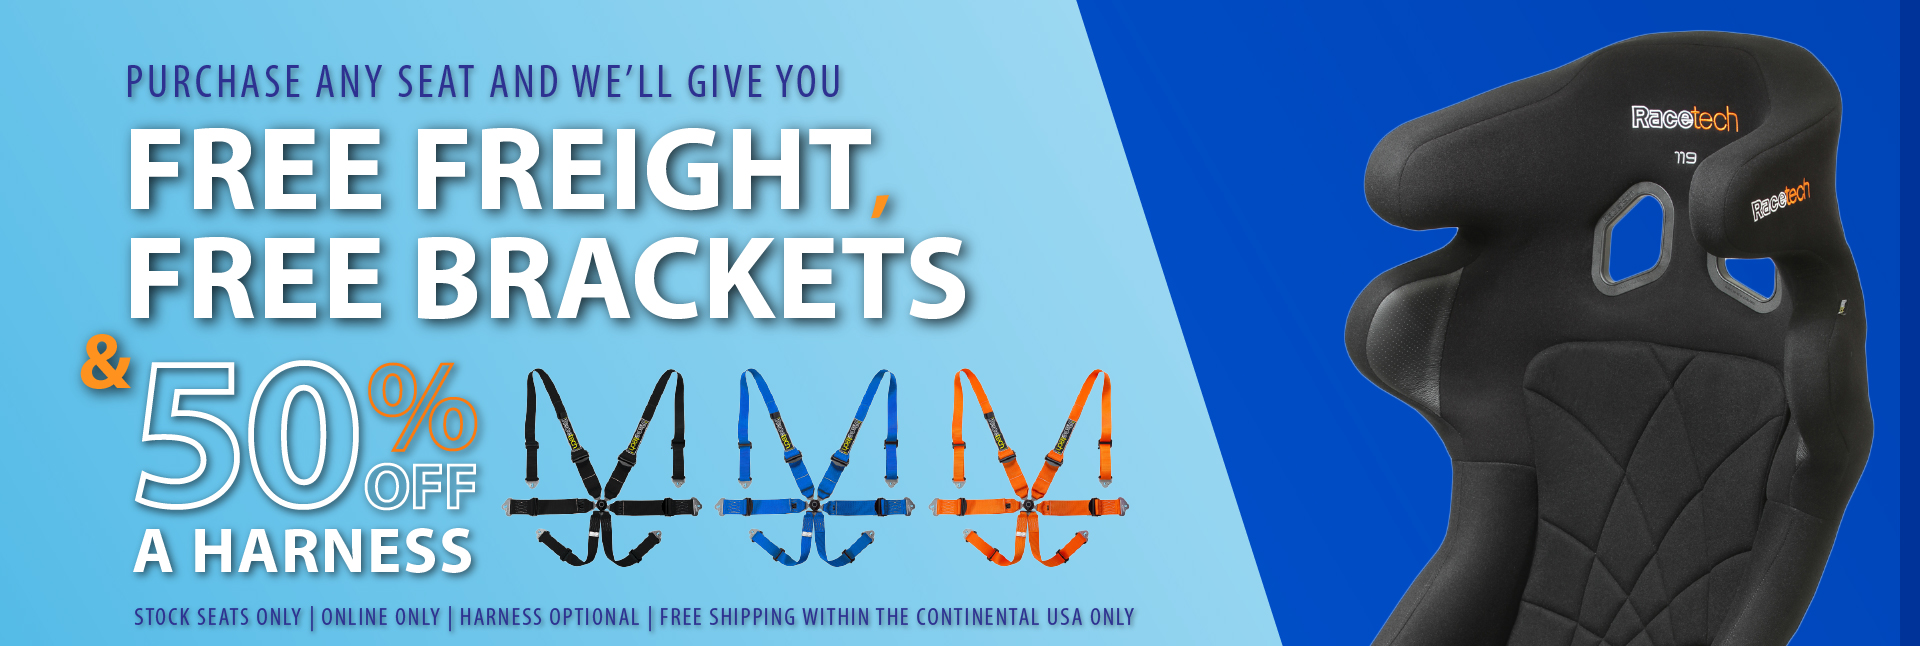 Free freight and brackets 50% off Harness